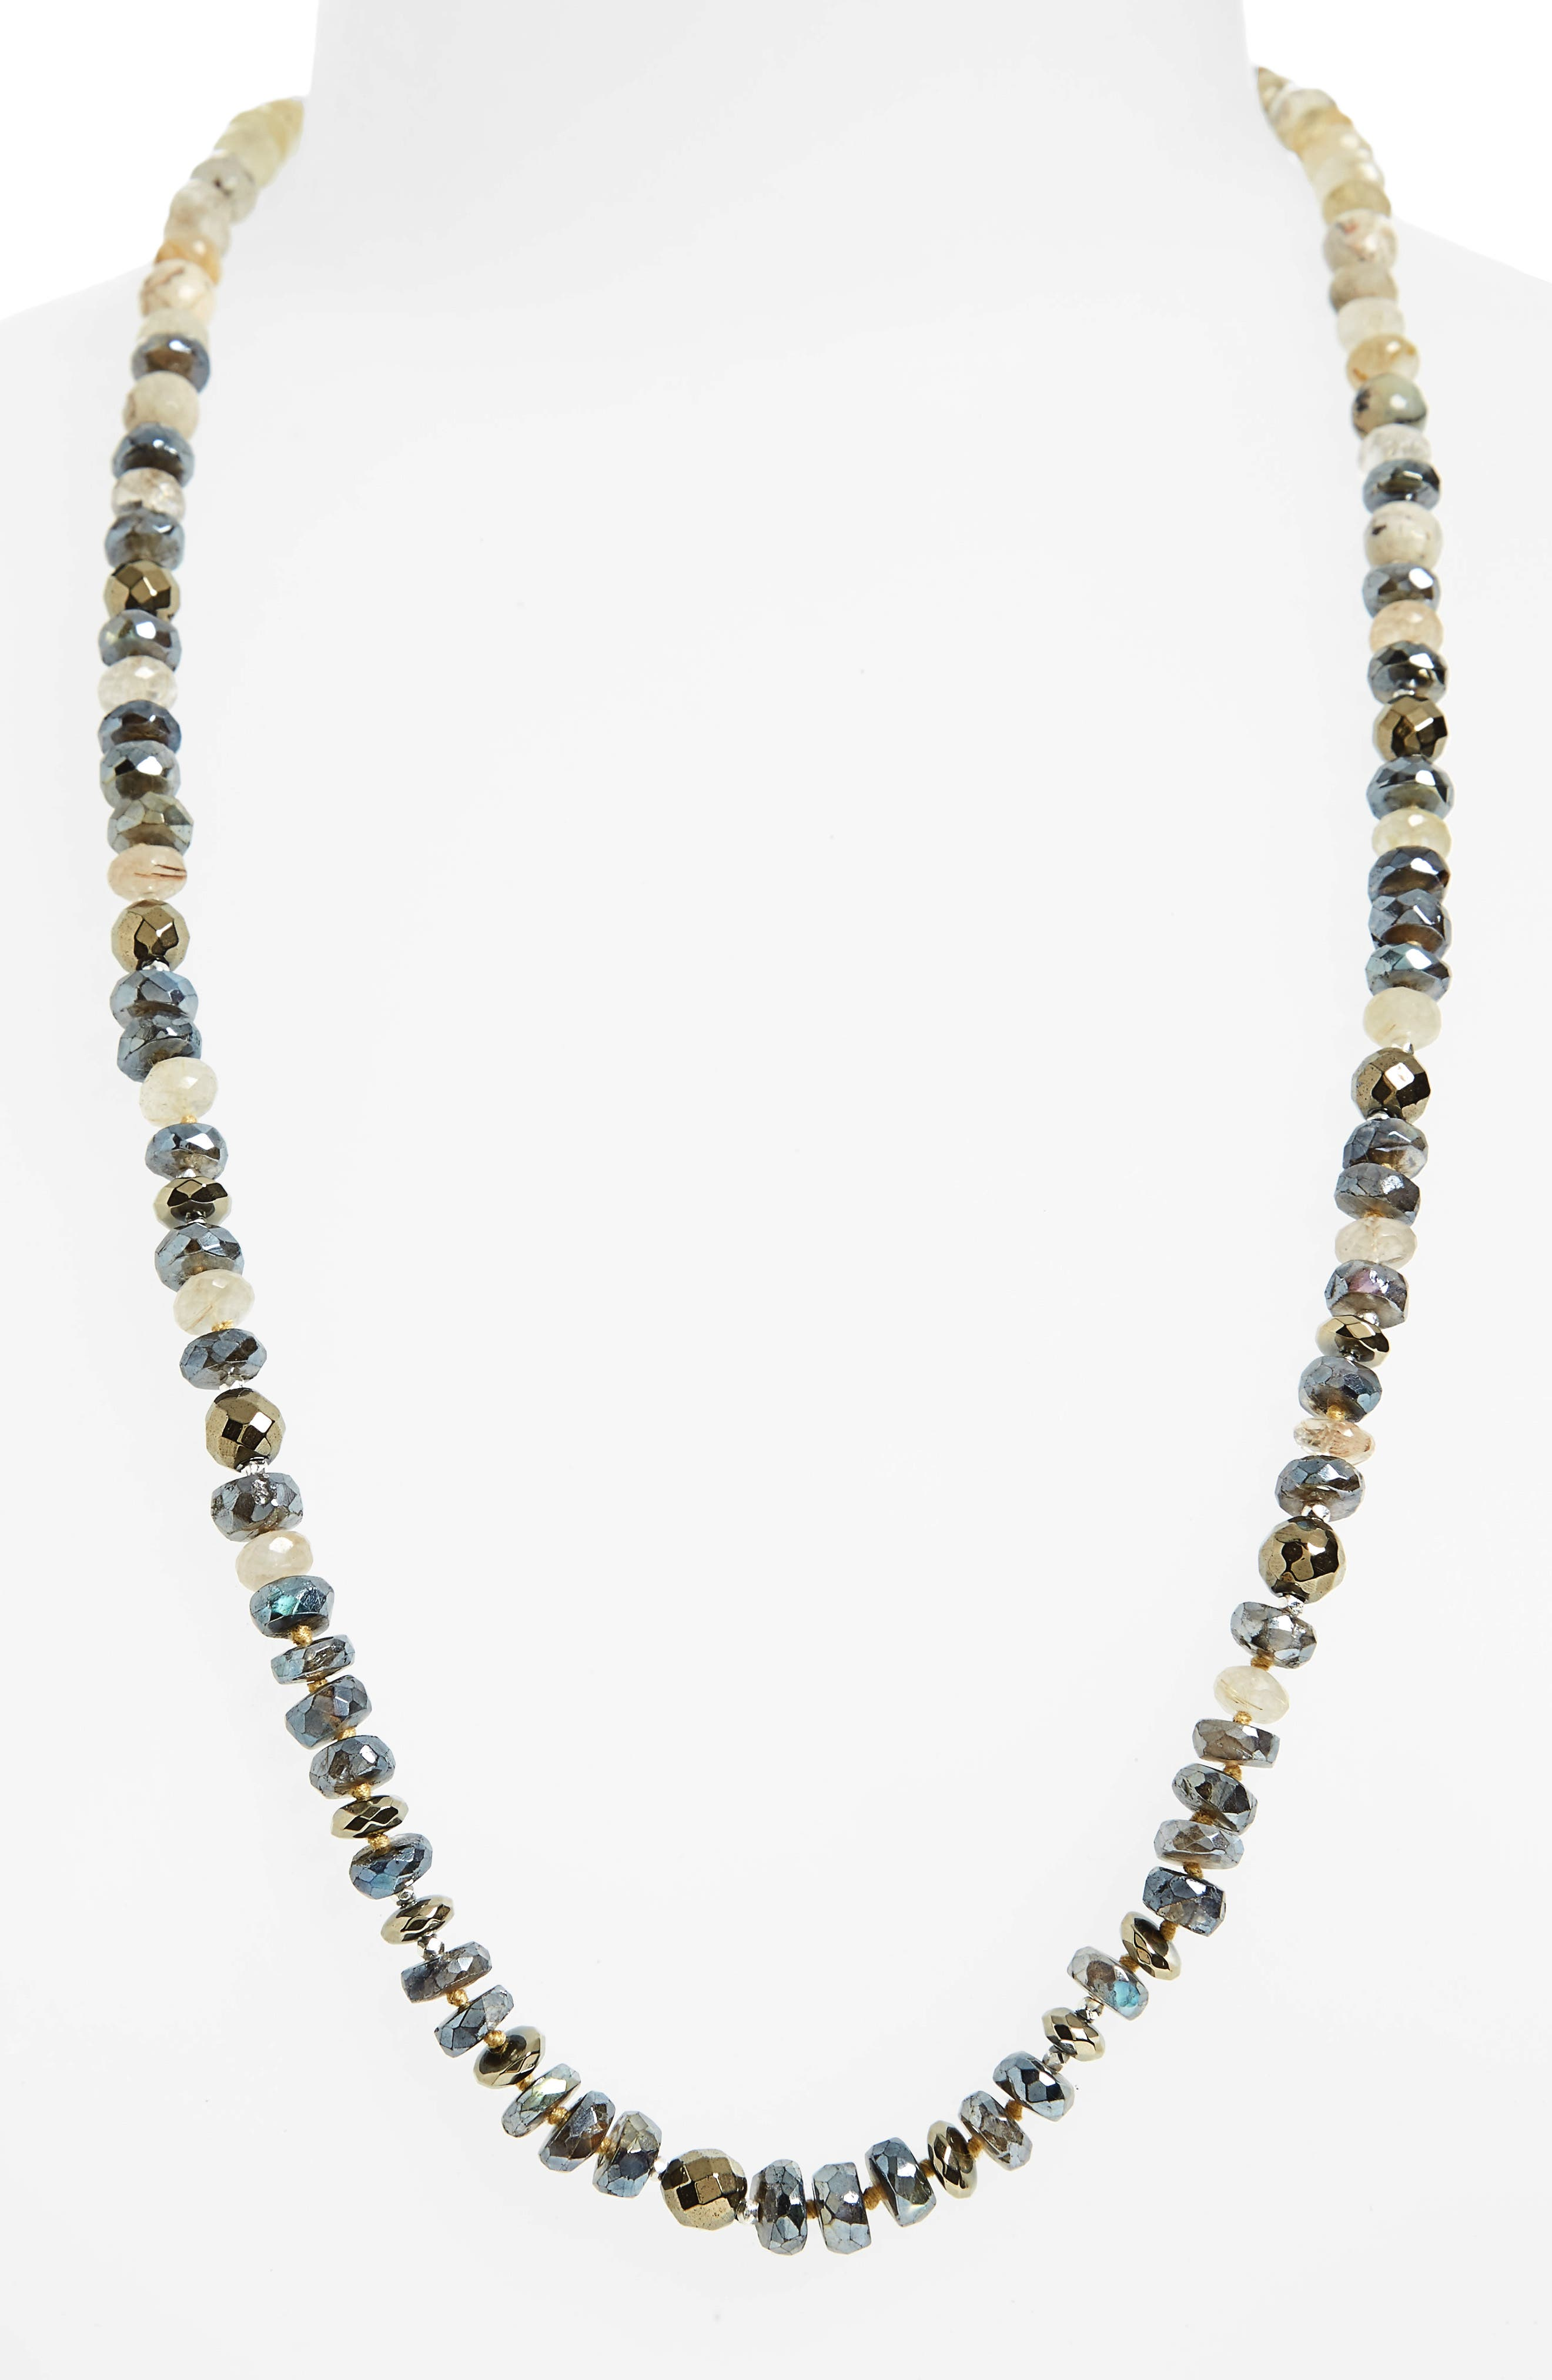 Alternate Image 1 Selected - Chan Luu Semiprecious Stone Adjustable Necklace